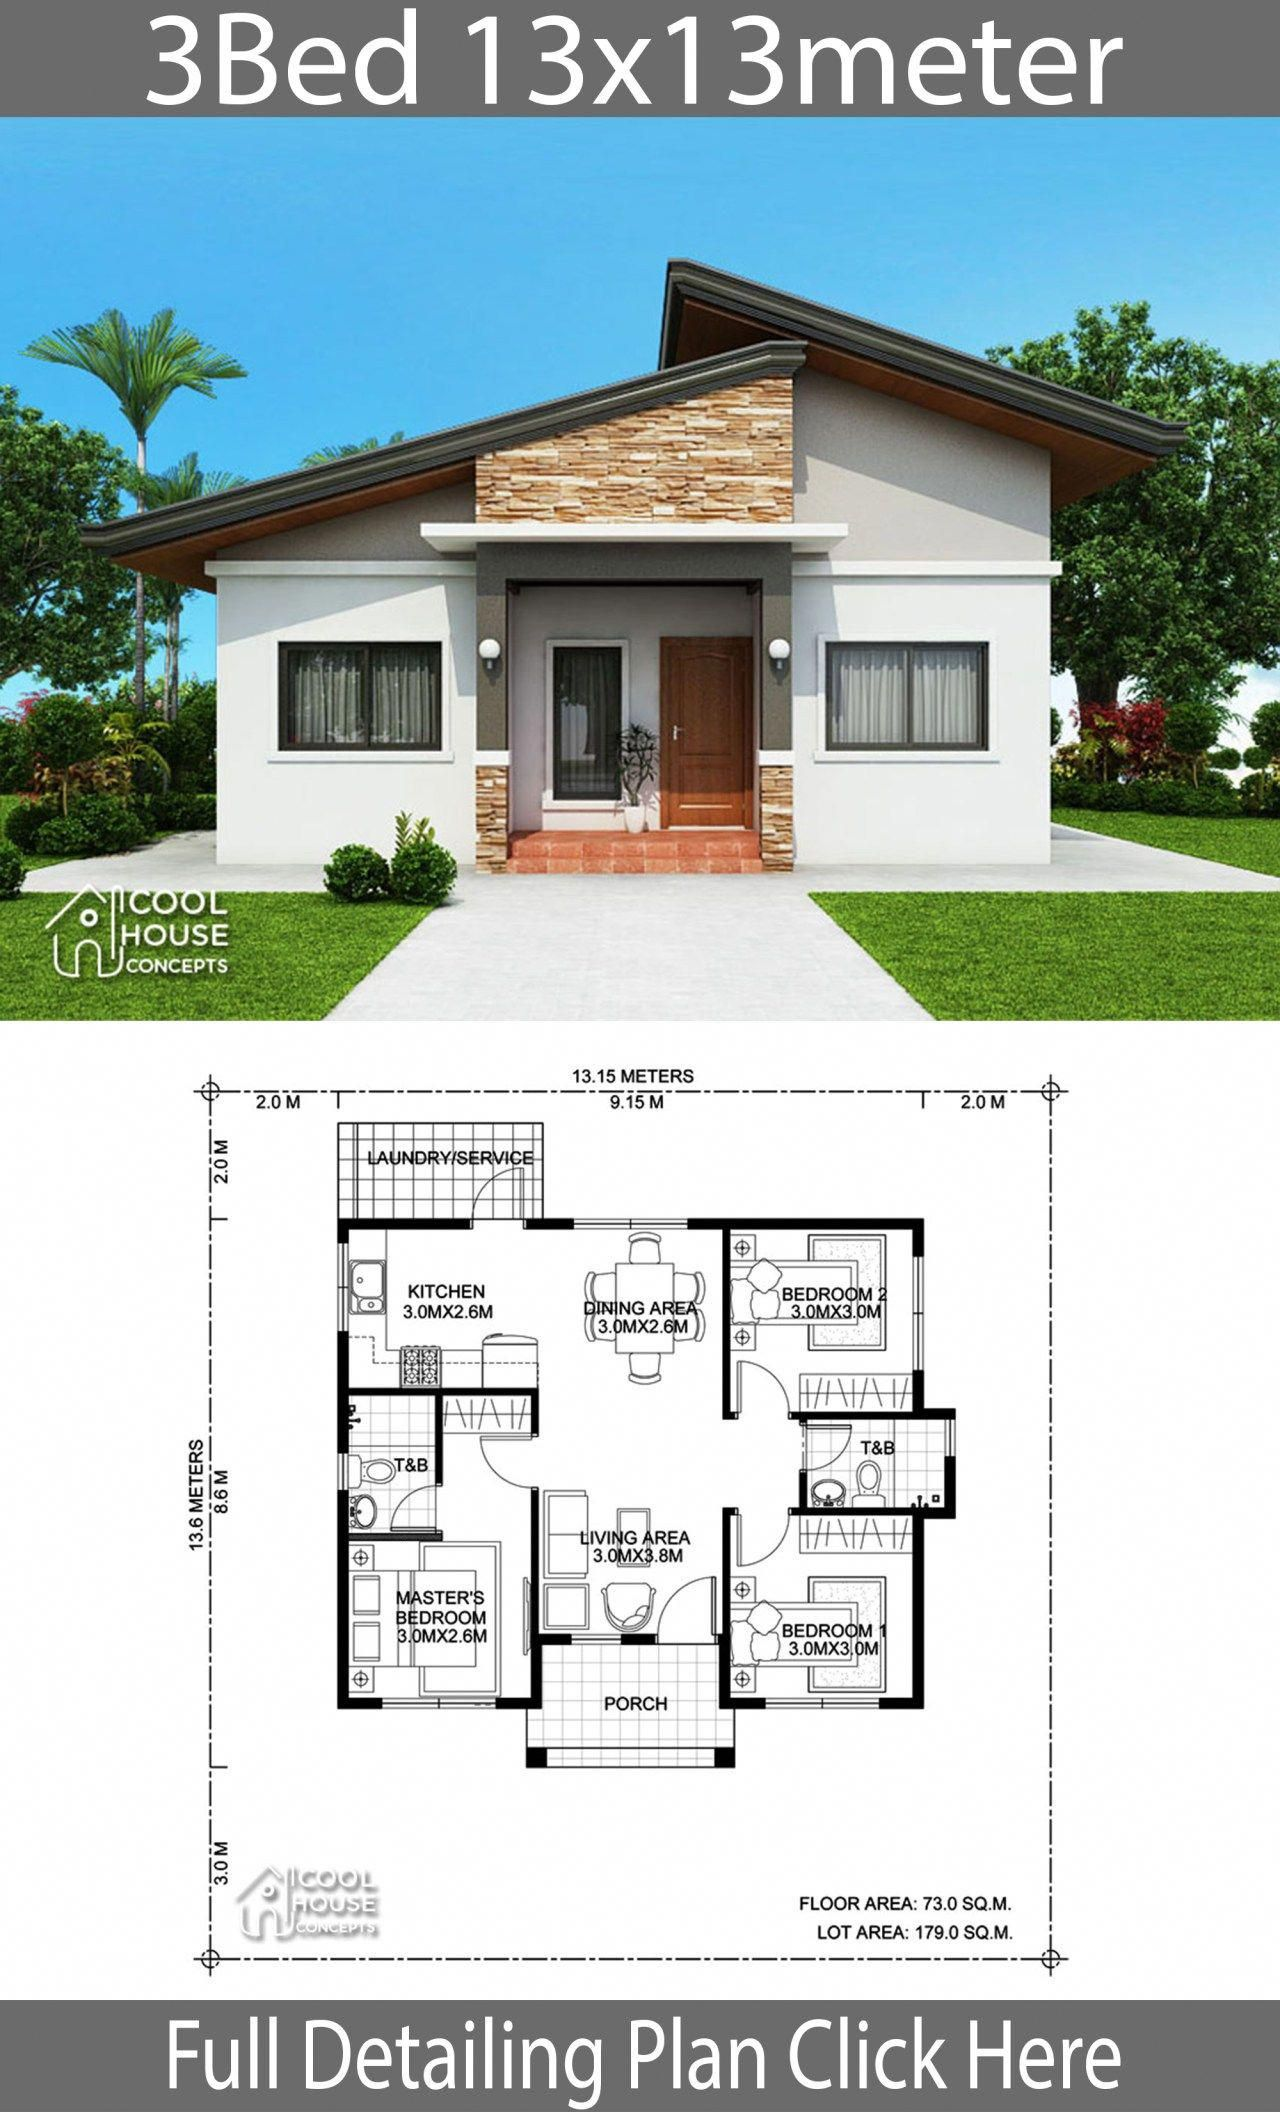 Home Design Plan 13x13m With 3 Bedrooms Home Ideas Beautiful House Plans Modern Bungalow House House Plan Gallery